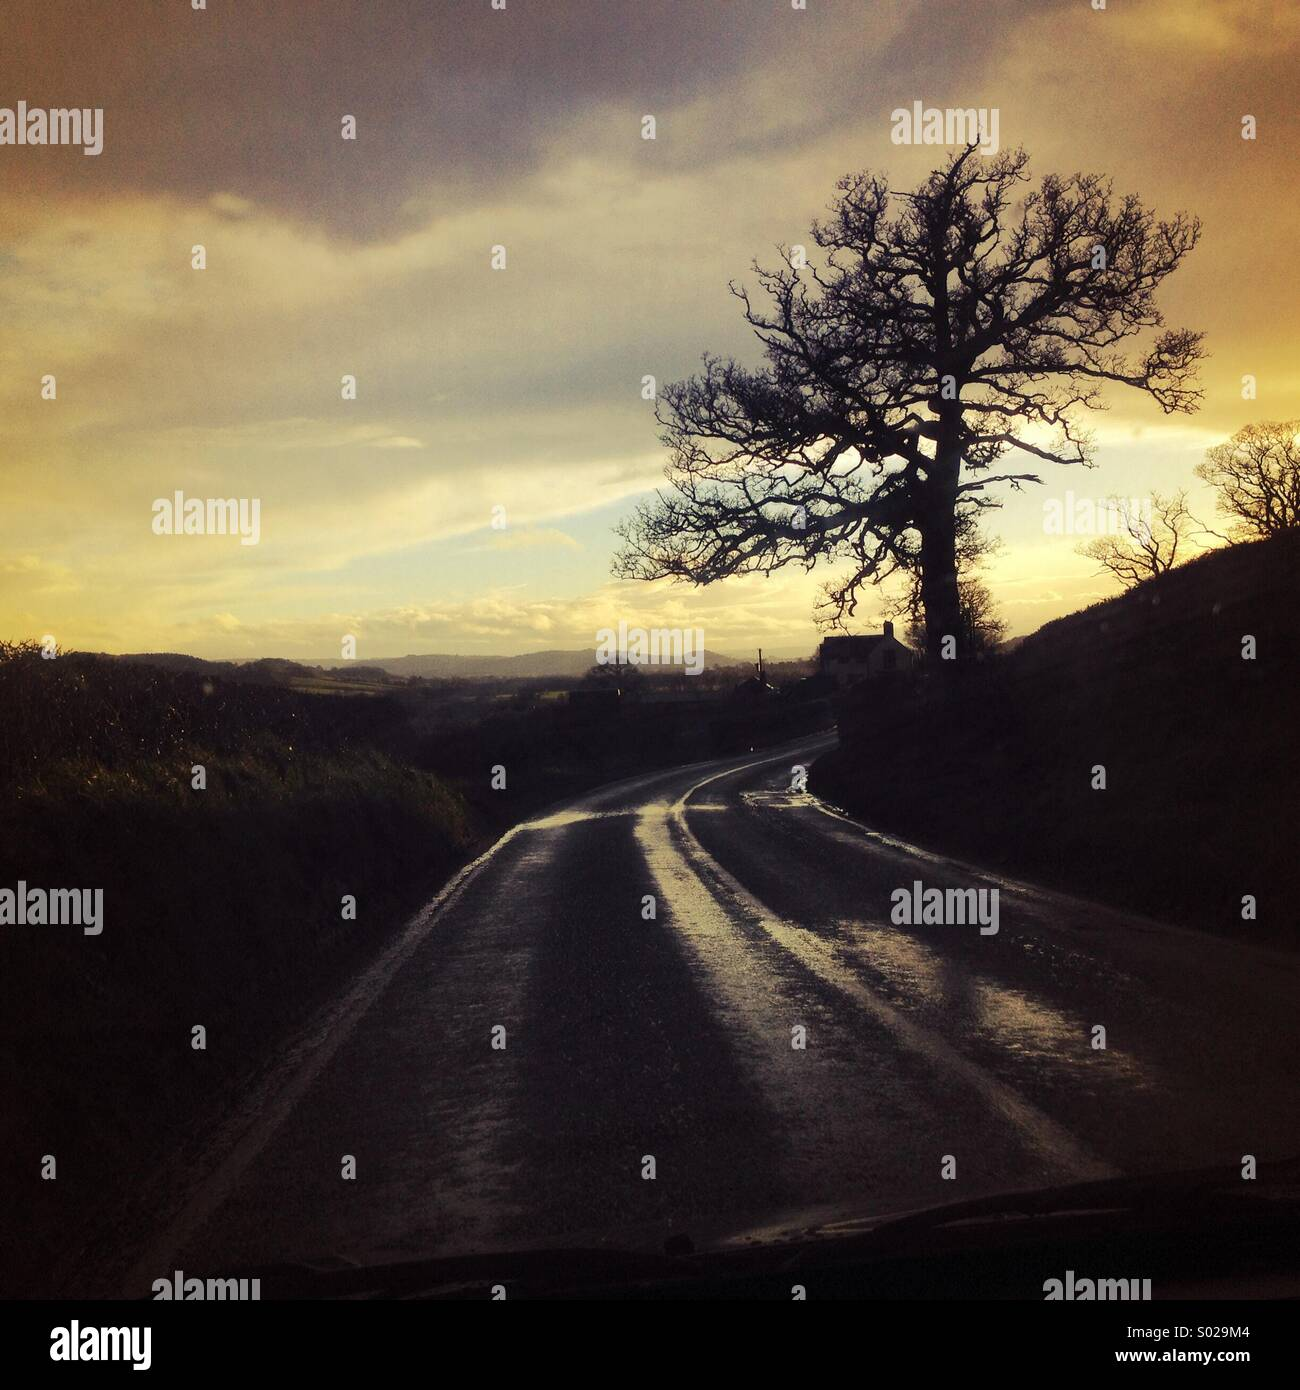 Wet road with bare tree silhouetted against a dramatic cloudy evening sky - Stock Image